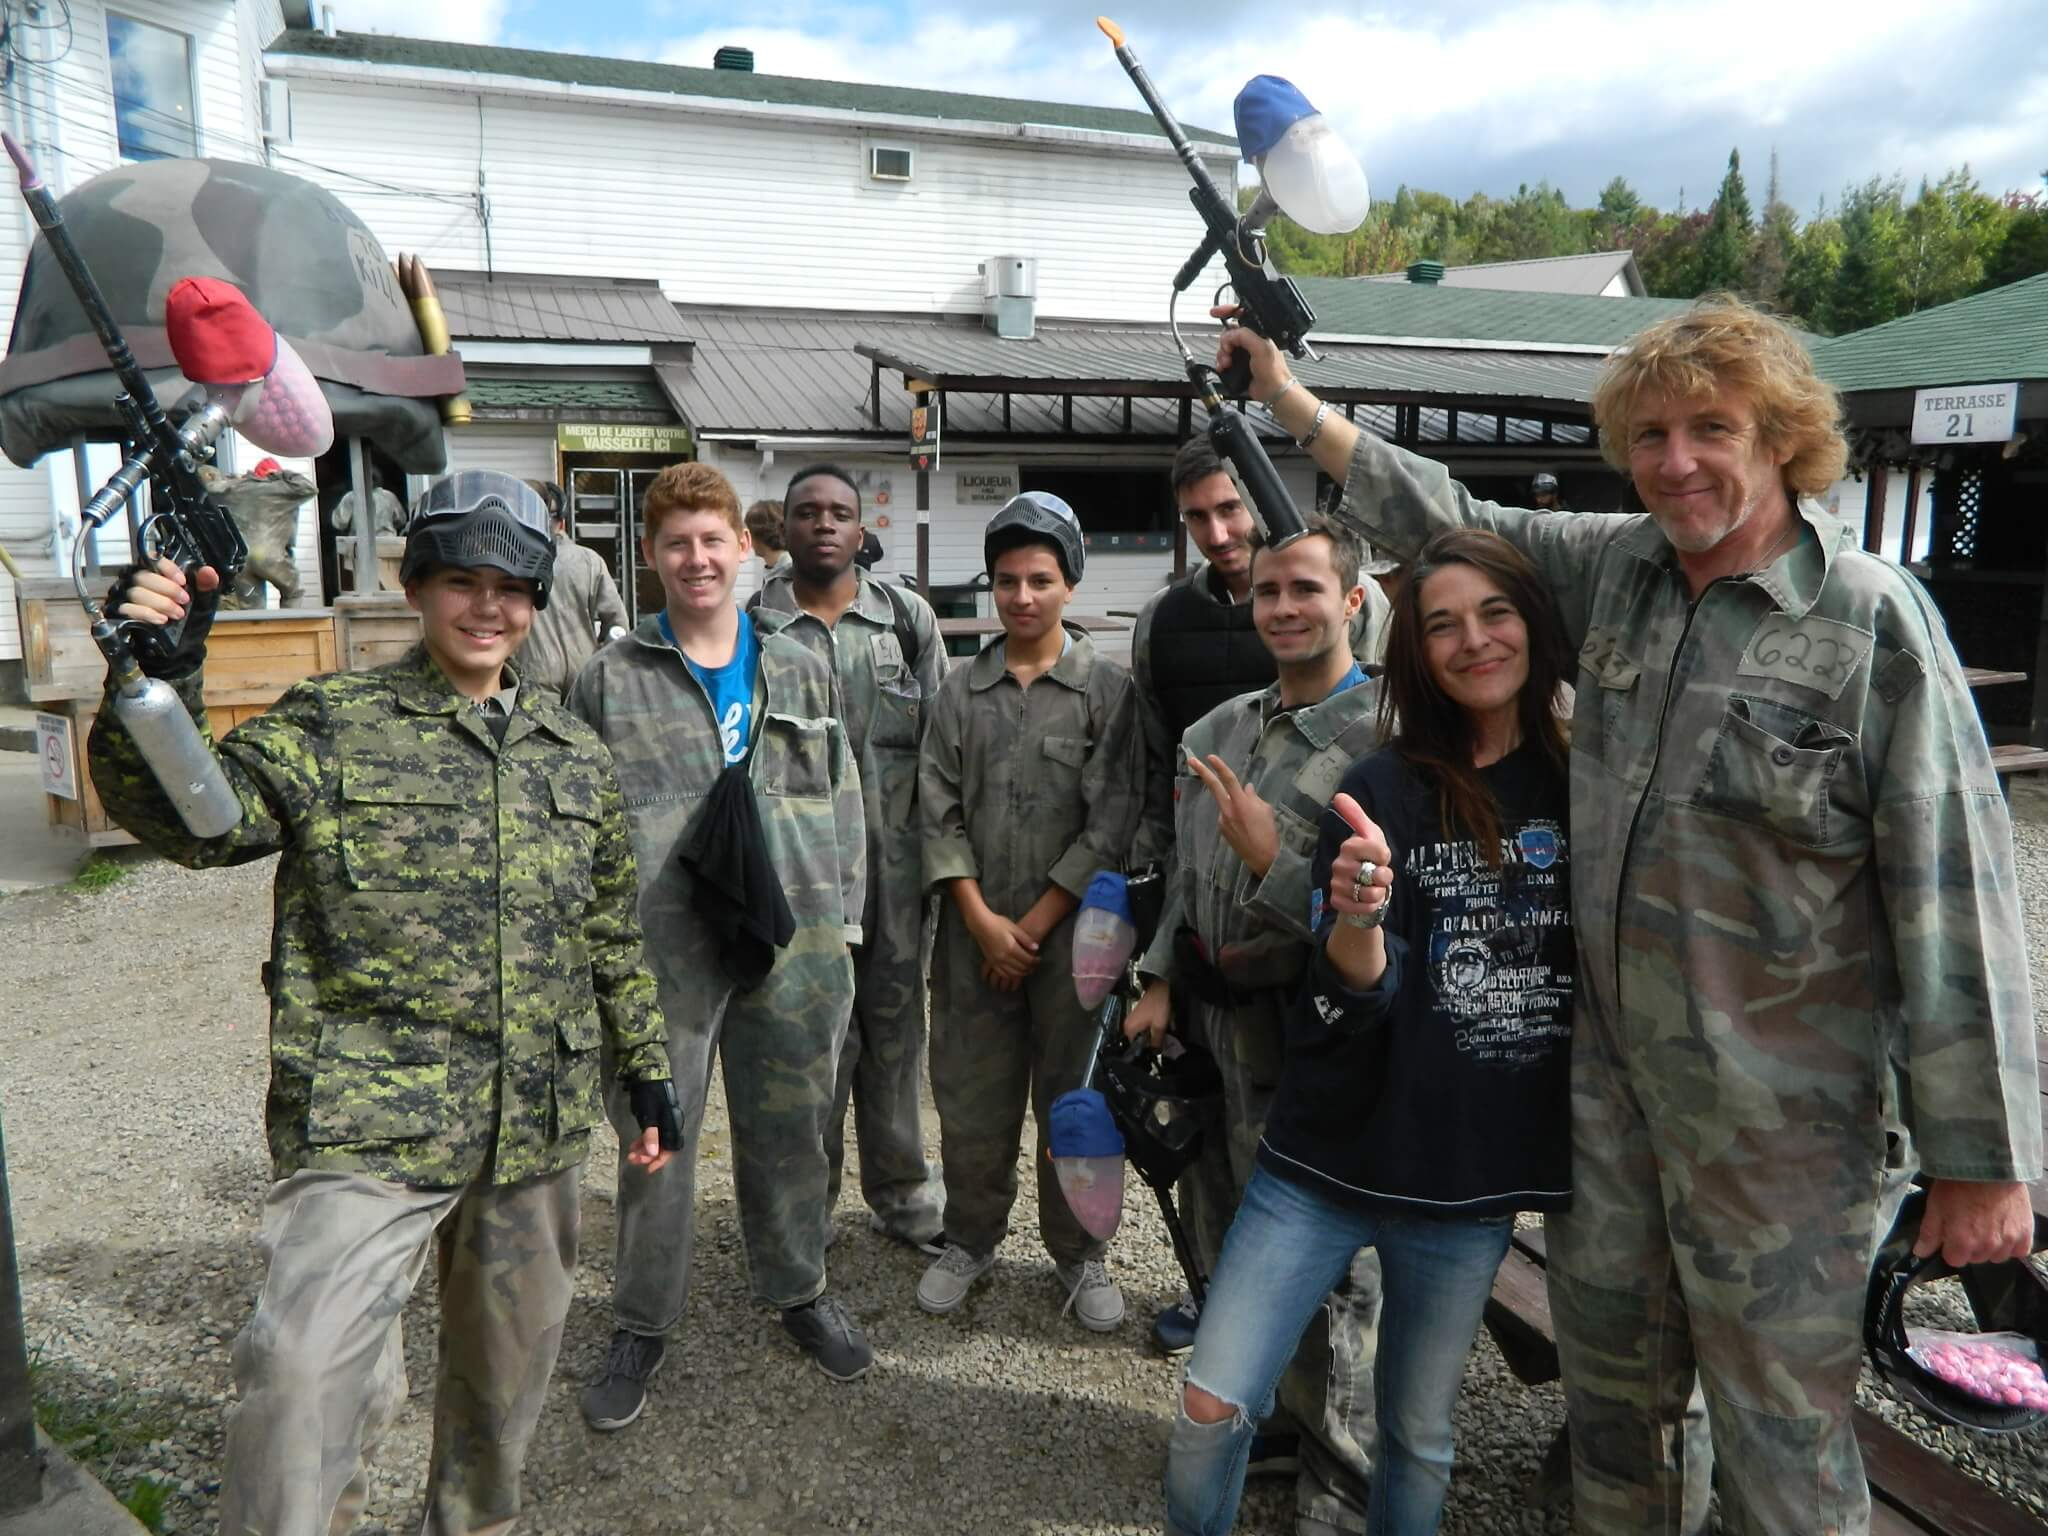 PAINTBALL'S DAY AT ST. ALPHONSE-RODRIGUEZ